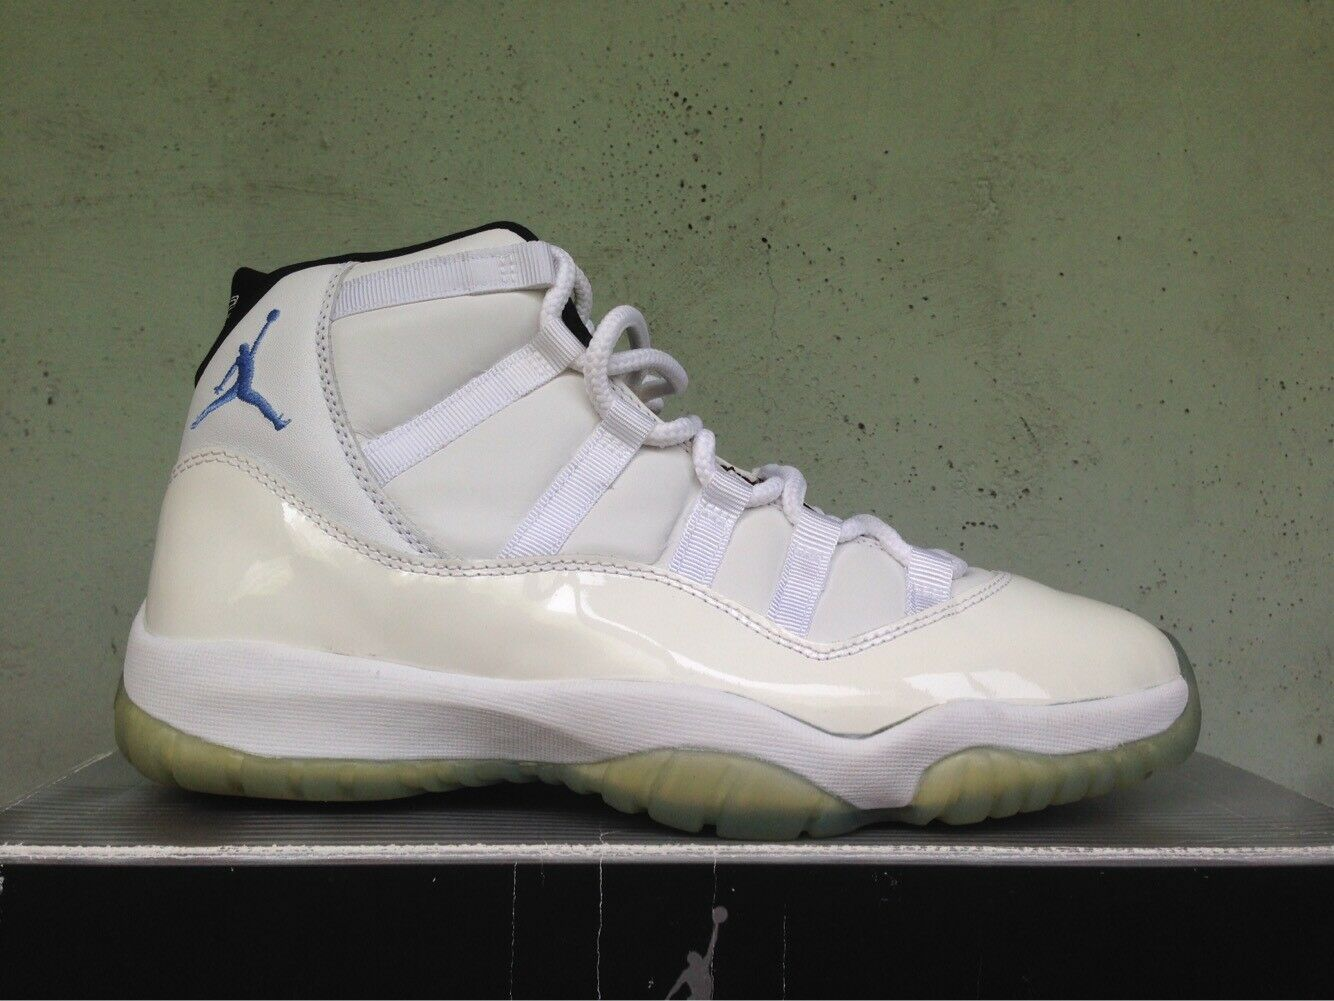 2001 nike air jordan 11 xi retrò columbia 136046 142 cool grey allevati concord